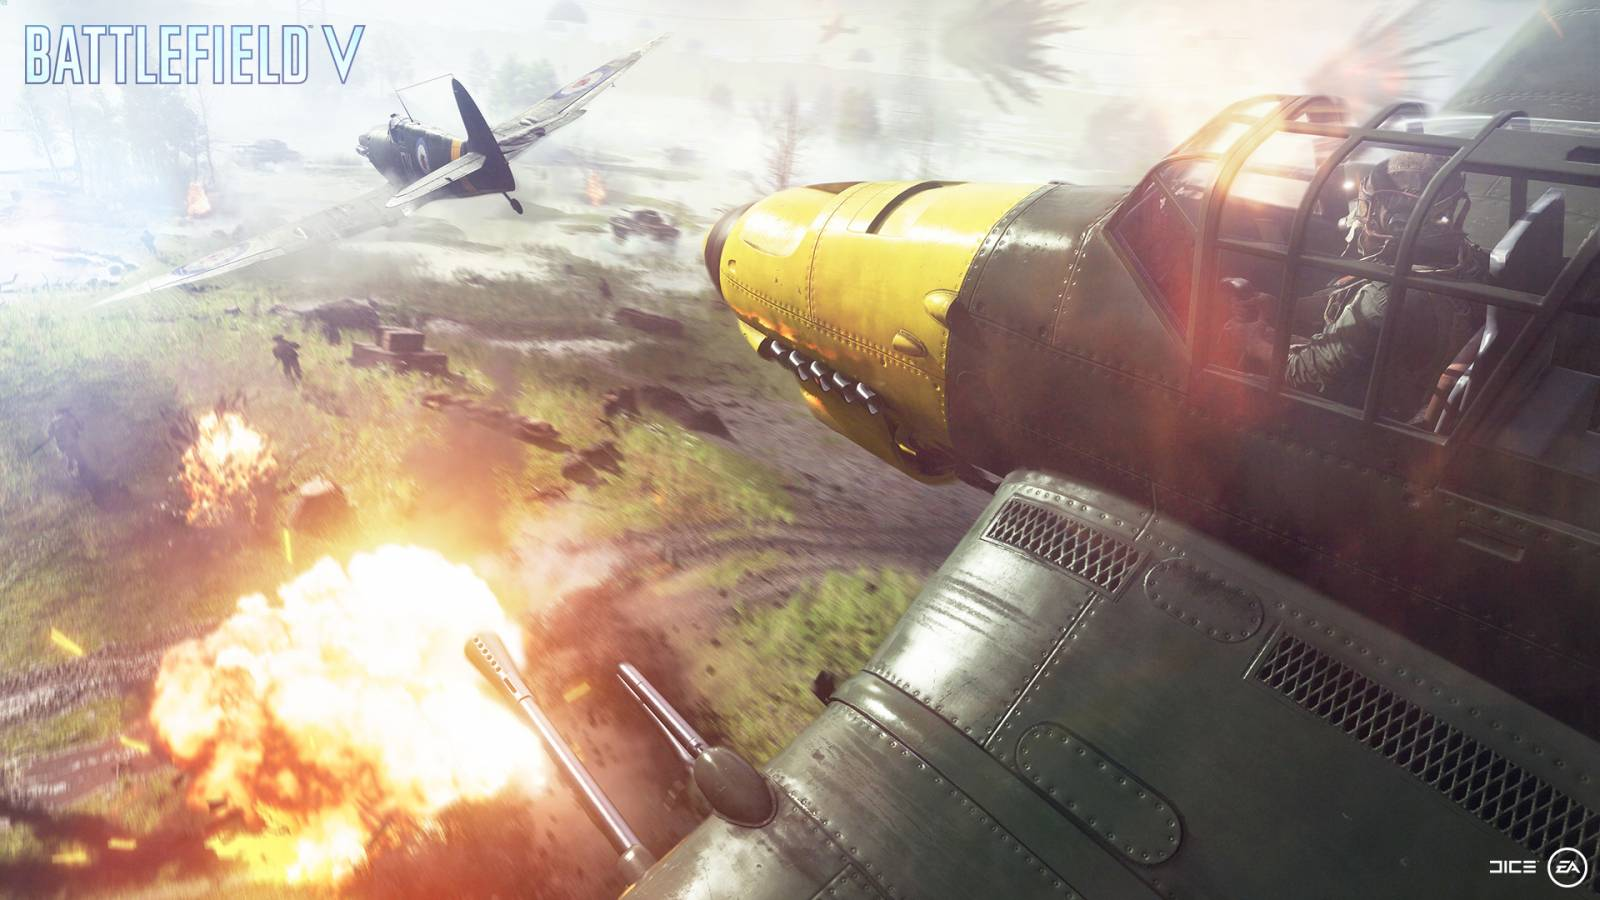 Image of two airplanes in Battlefield 5